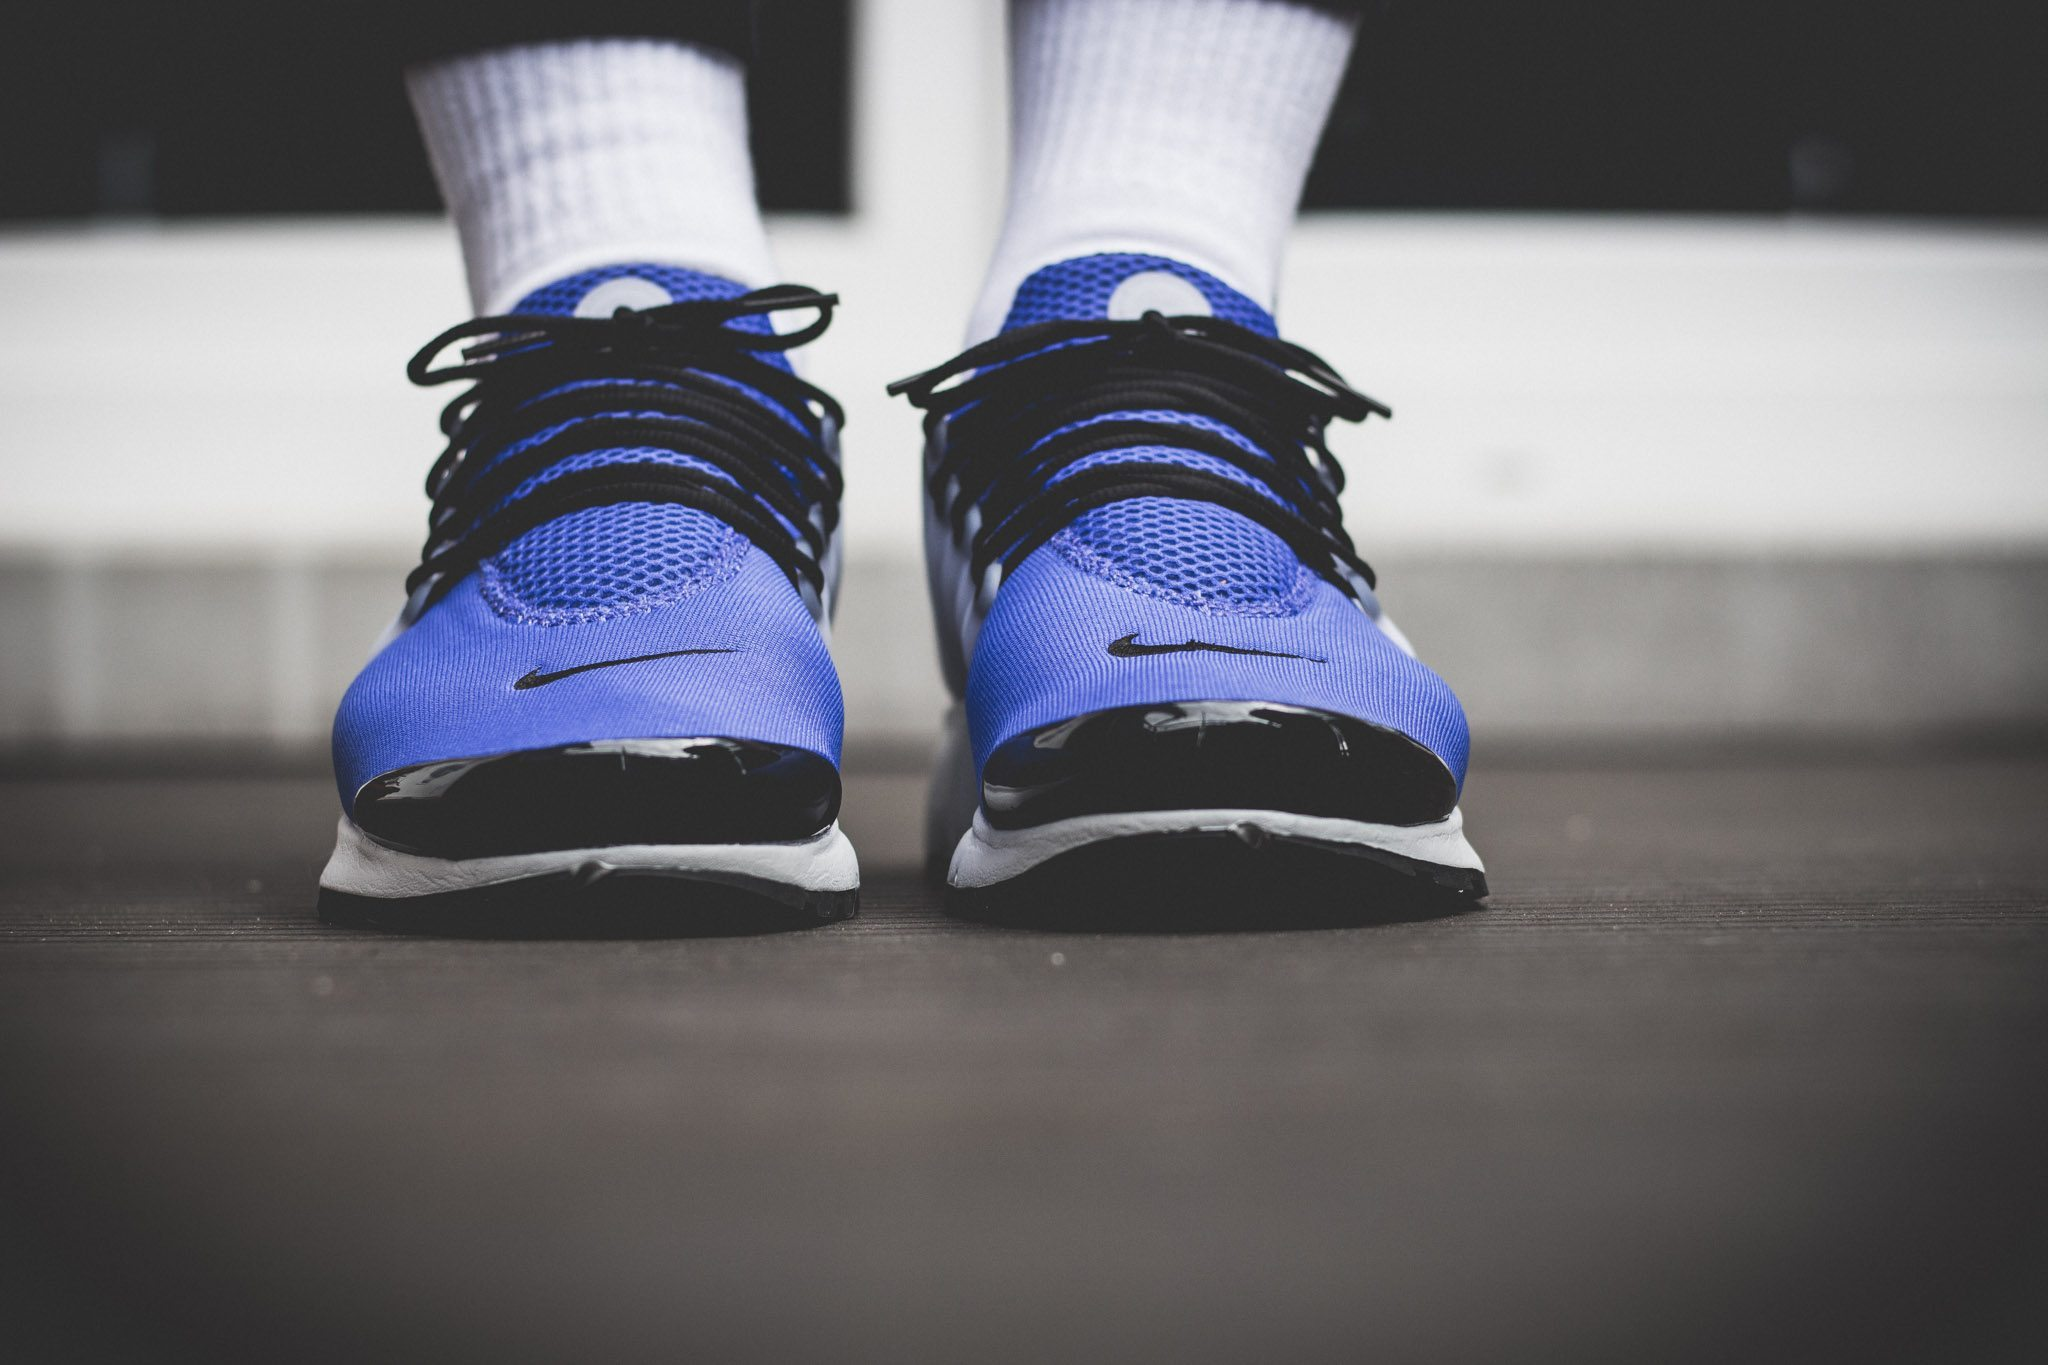 Nike Air Presto Persion Violet On Feet 3